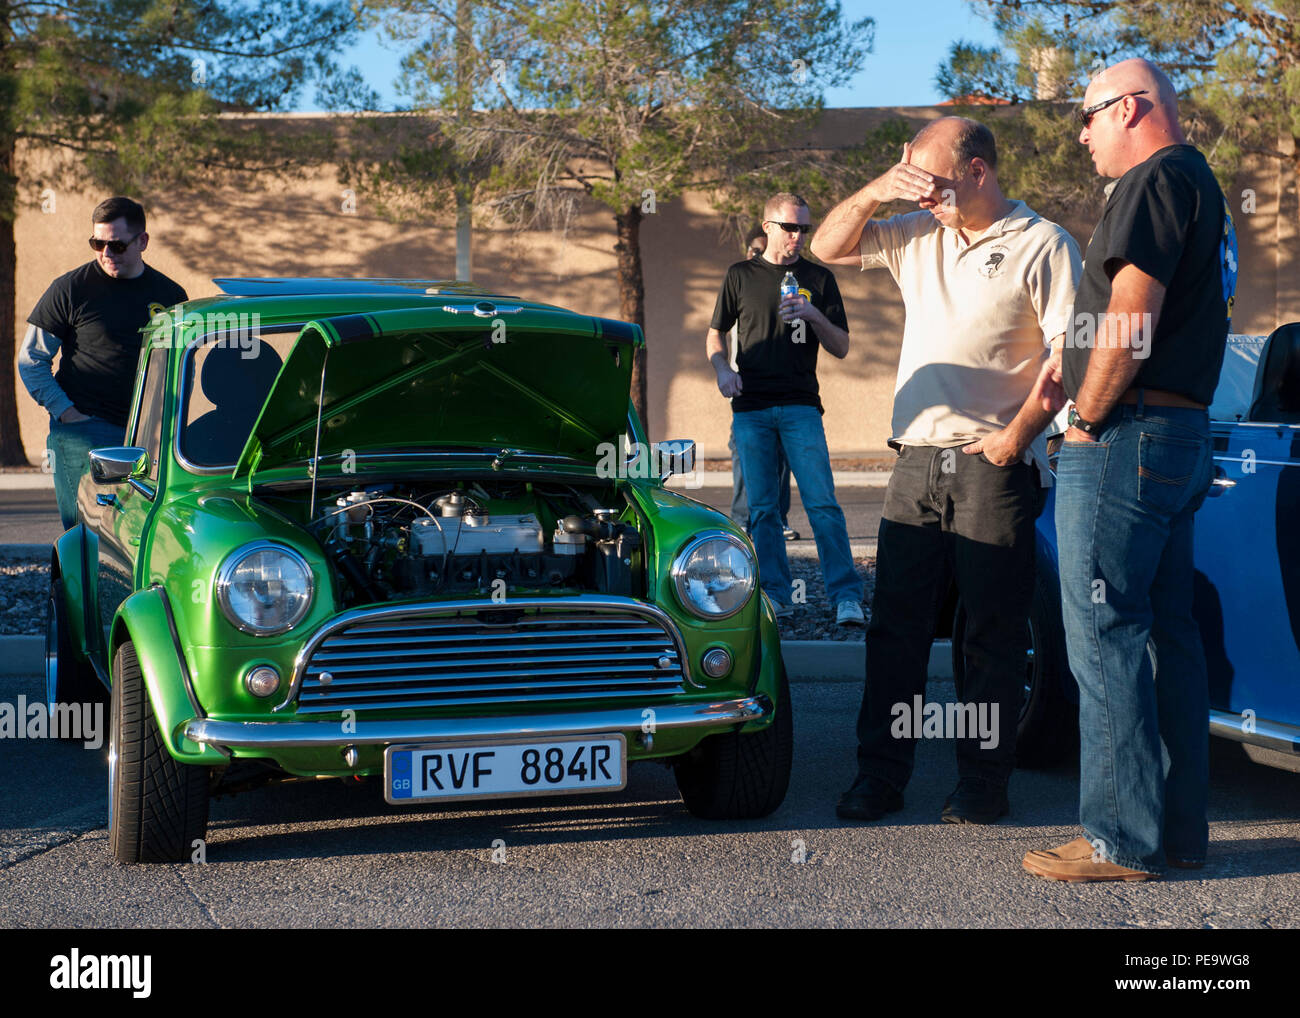 Participants In The Nellis Family Sports Day Inspect A Mini Cooper